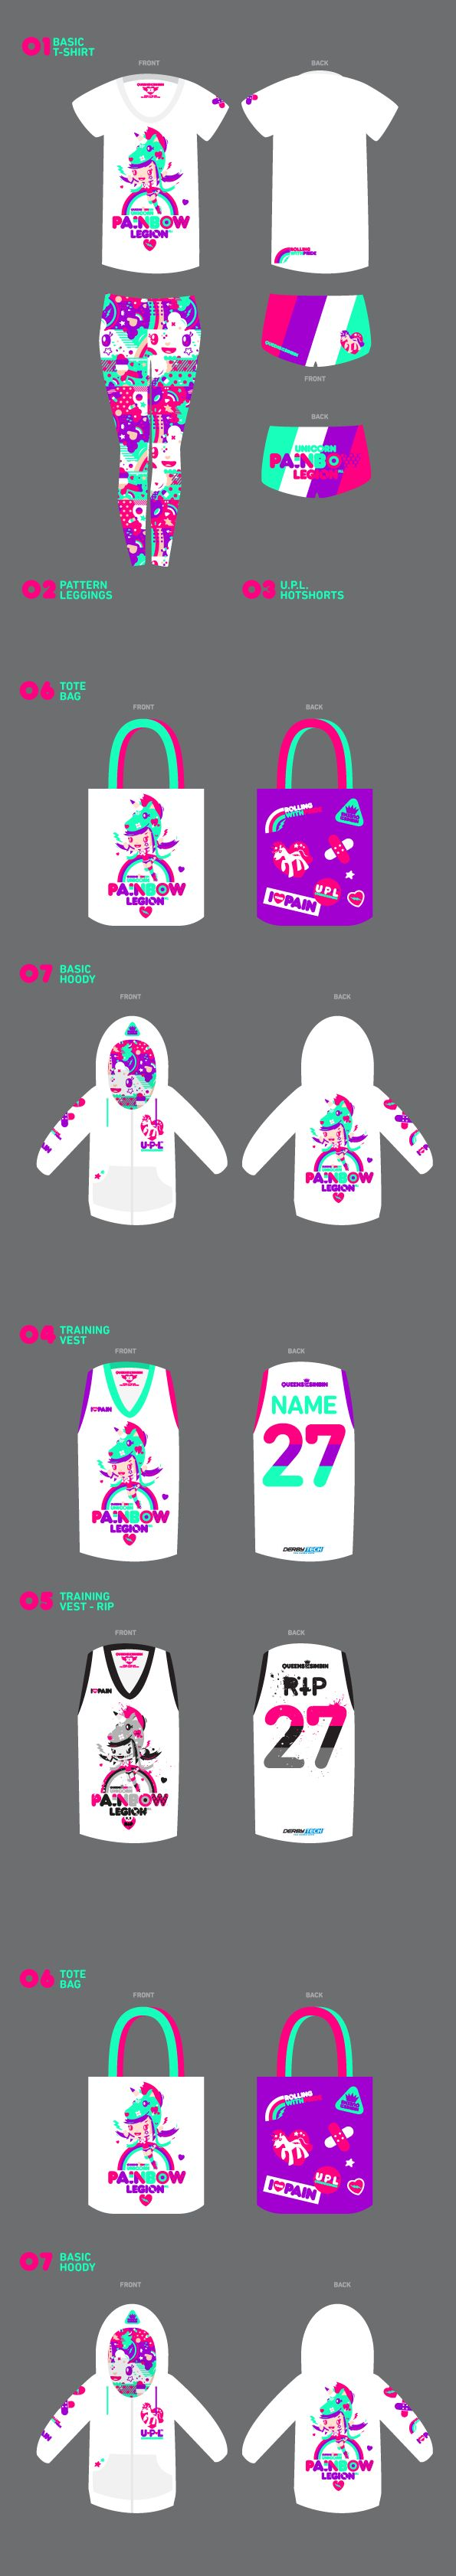 AOKU x QUEENS OF THE SIN BIN LINE-UP [rollerderby uniform brand]